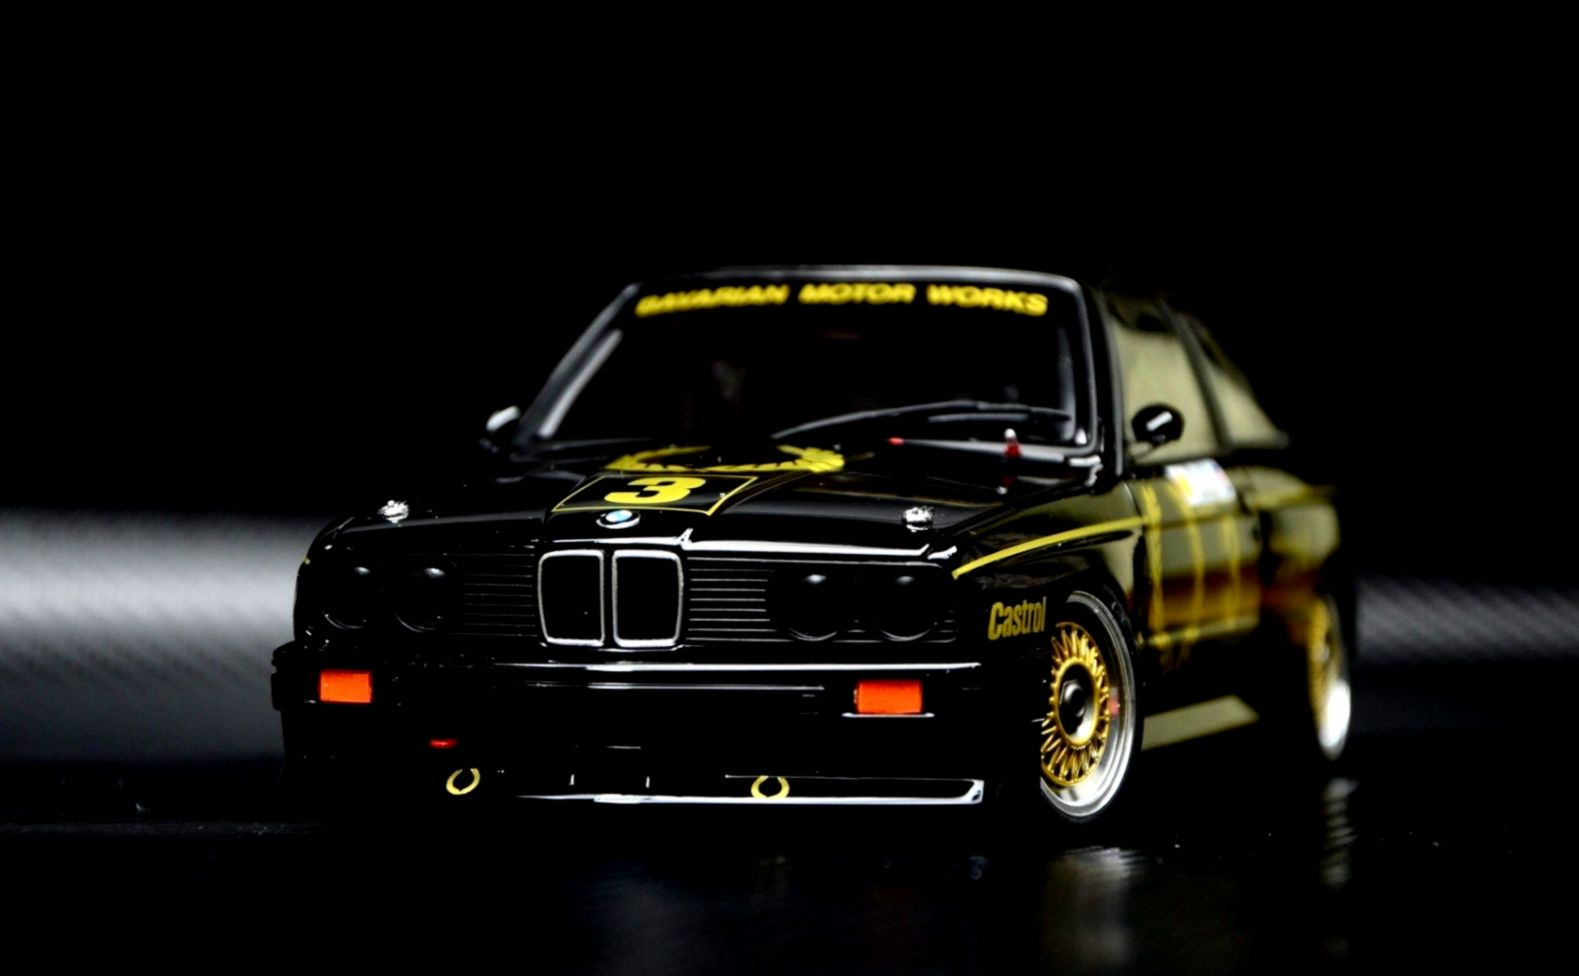 Bmw E30 M3 Car Toy Hd Wallpaper Format Wallpapers